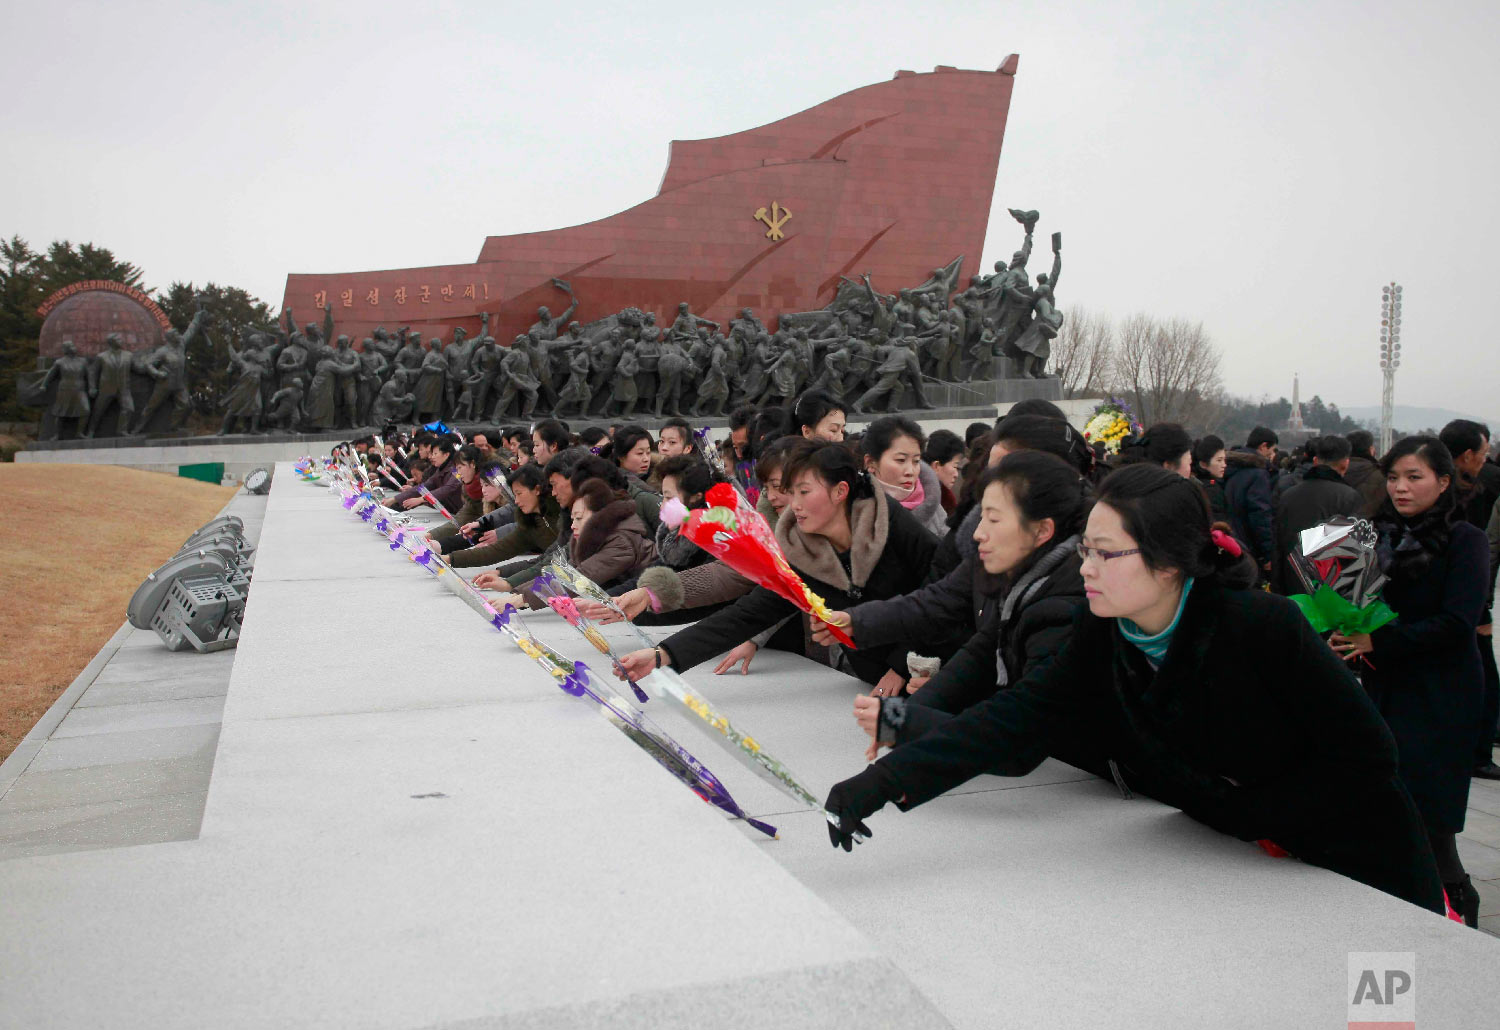 People visit statues of North Korean late leaders, Kim Il Sung and his son Kim Jong Il, to lay bouquets of flowers on the Lunar New Year in Pyongyang, North Korea, Tuesday, Feb. 5, 2019. (AP Photo/Jon Chol Jin)